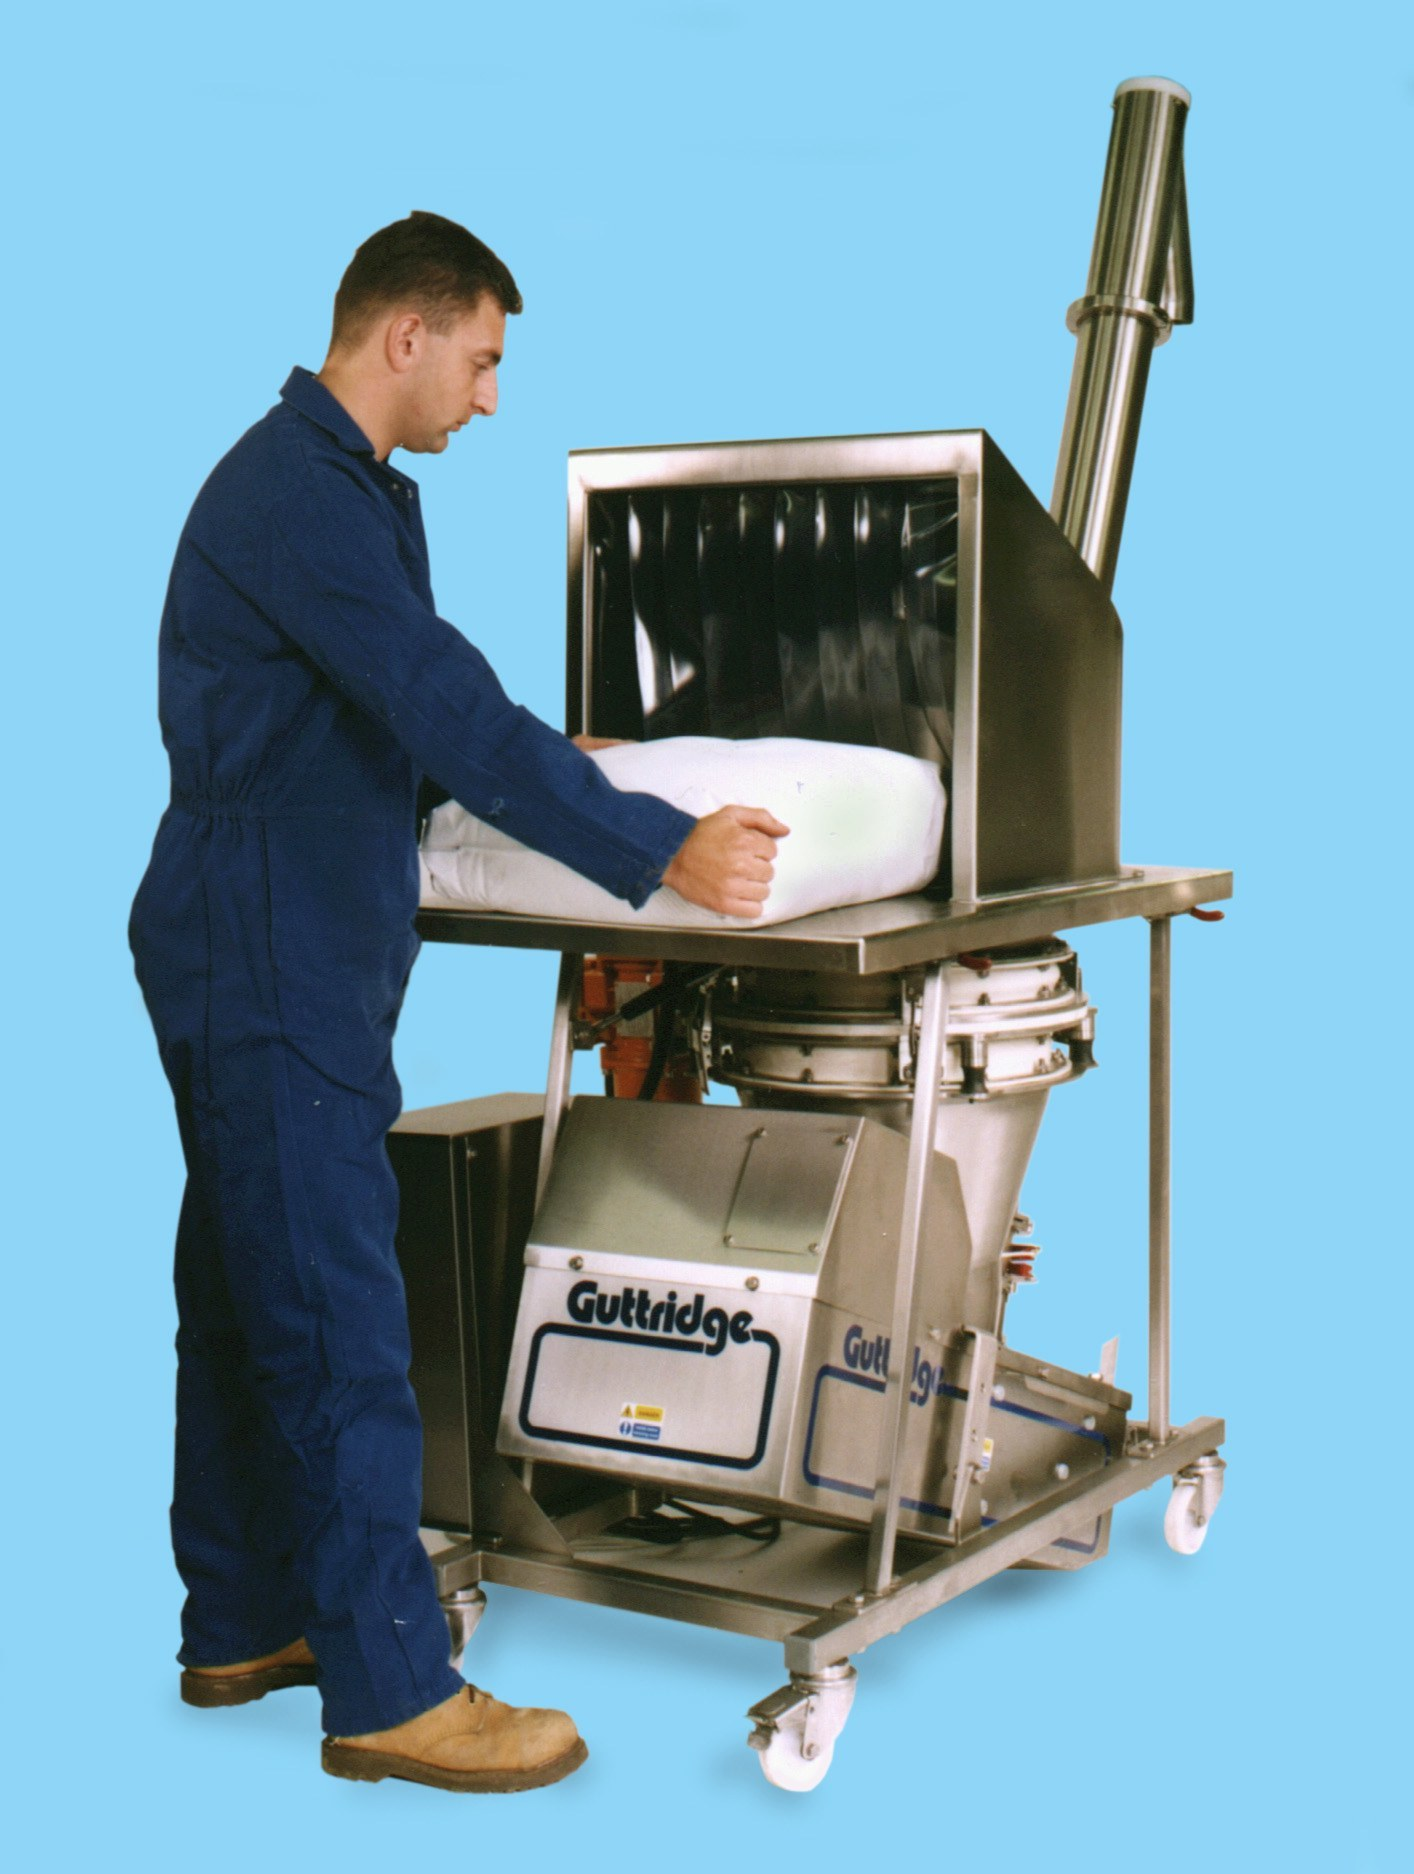 Sieveflo Mobile Screw Elevator with Check Sieve, Food Grade Machinery Range